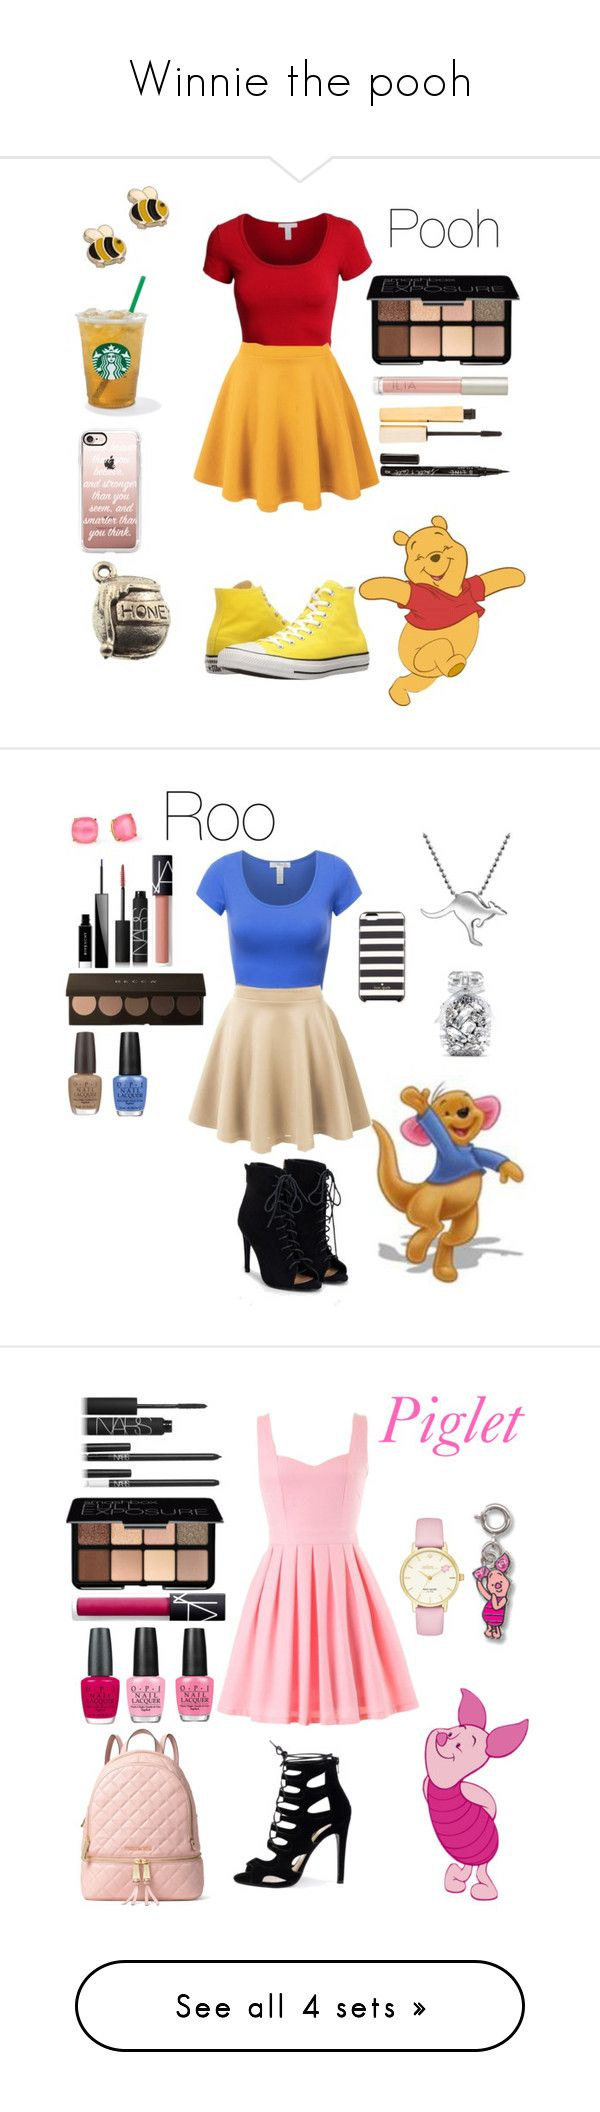 """Winnie the pooh"" by crystalgems125 ❤ liked on Polyvore featuring Converse, LE3NO, Smashbox, Ilia, Stila, Smith & Cult, Casetify, Givenchy, NARS Cosmetics and JustFab"